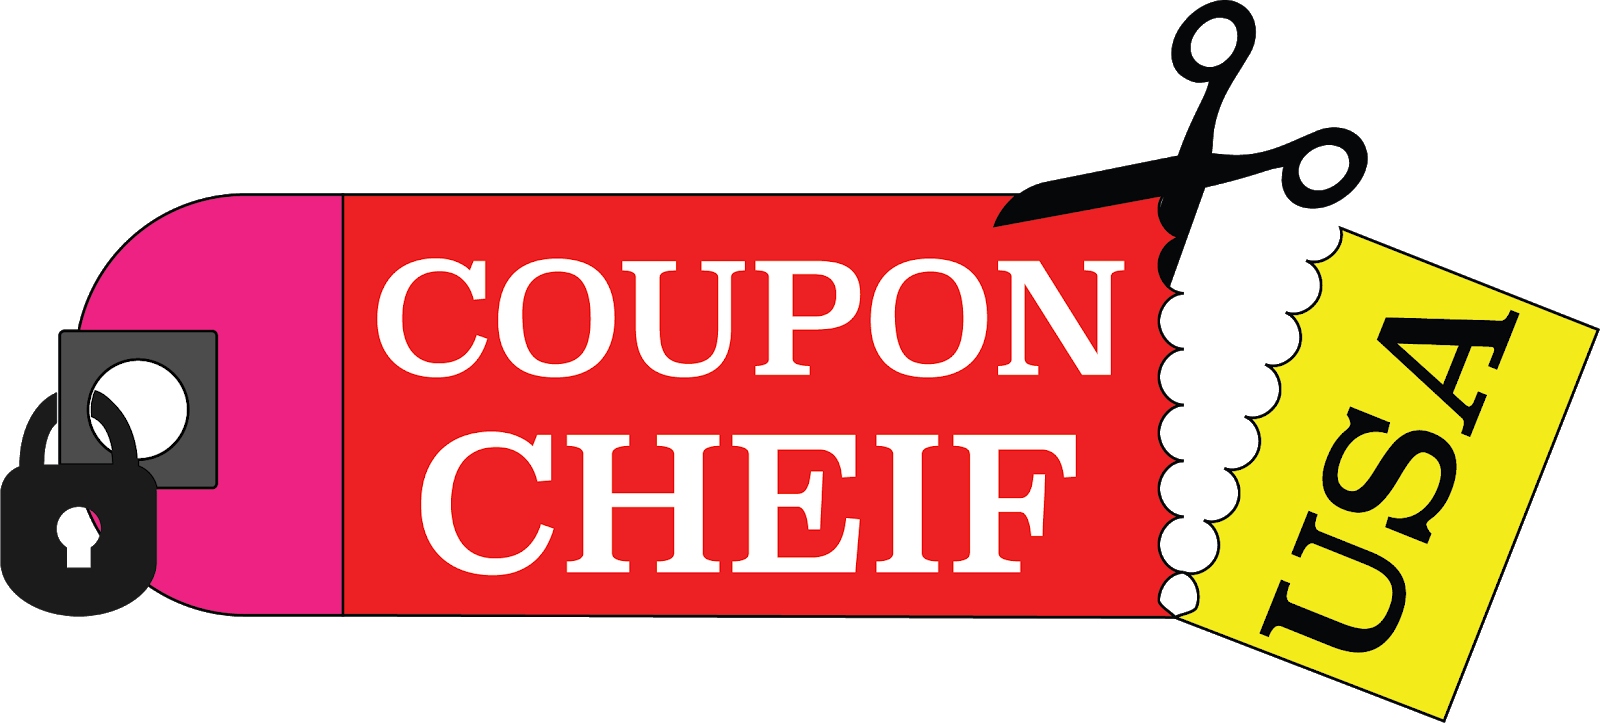 Coupon Chief USA